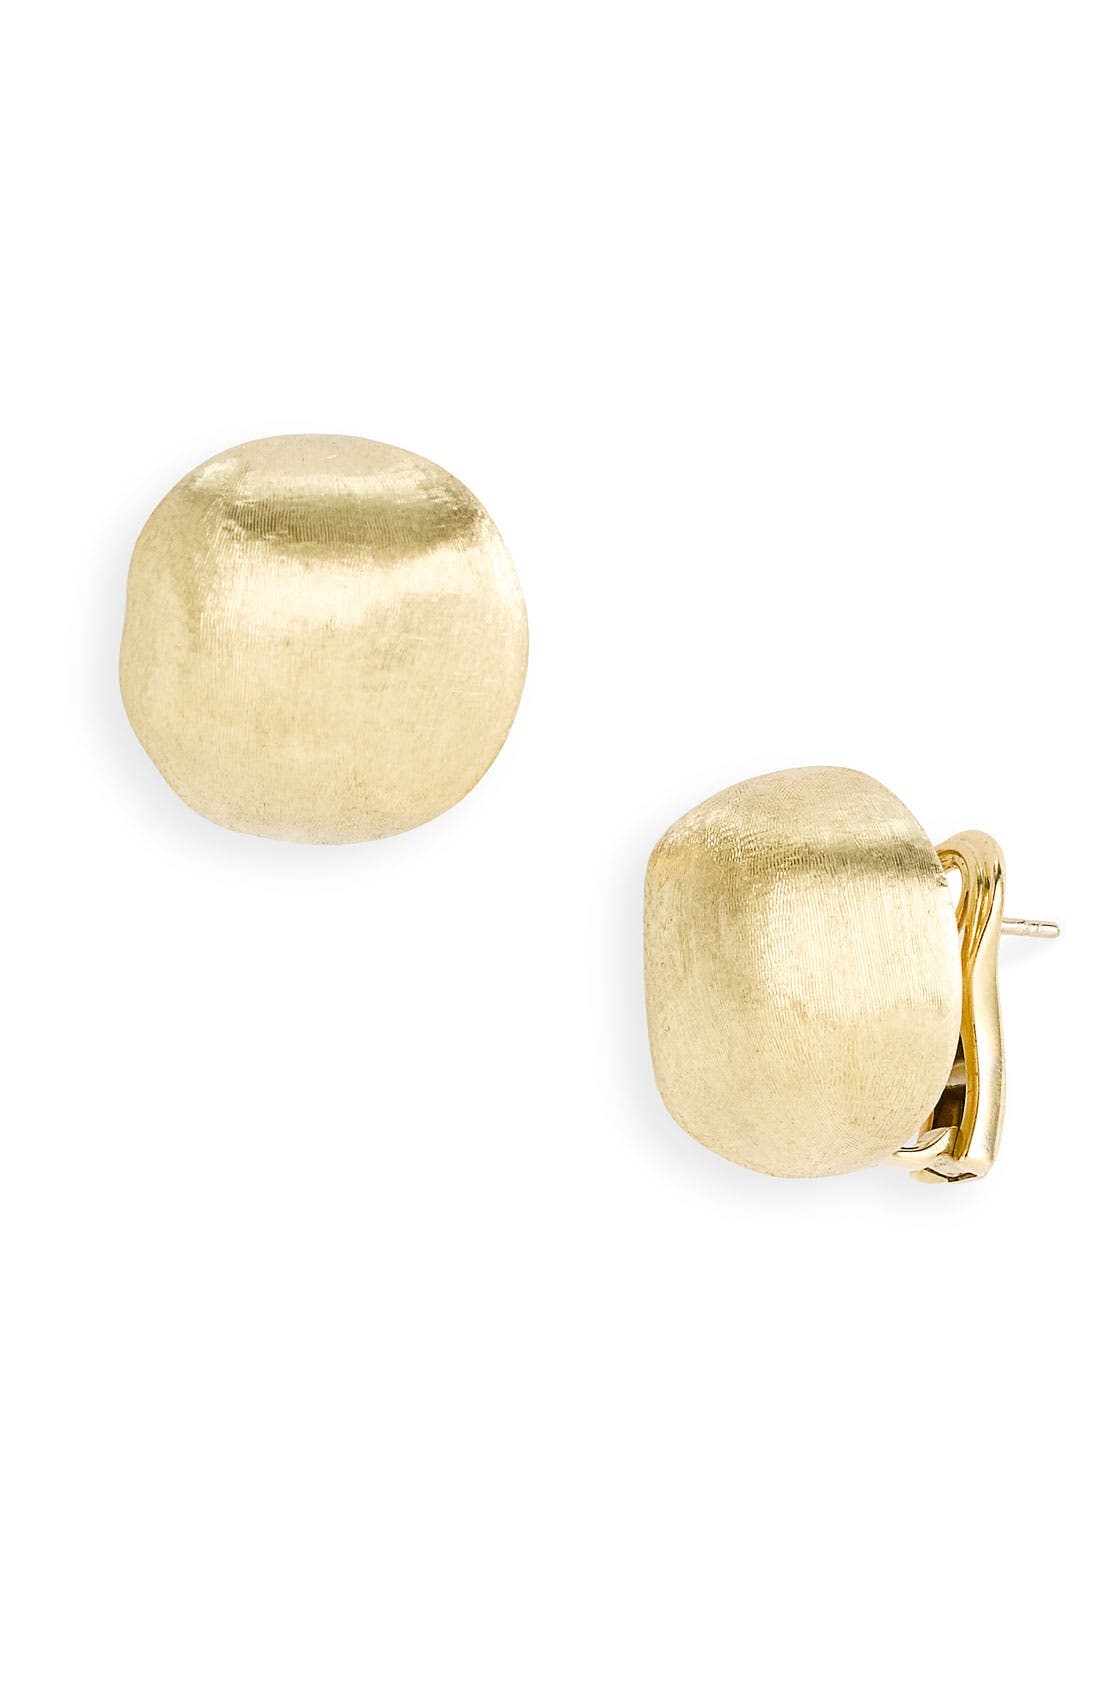 Alternate Image 1 Selected - Marco Bicego 'Africa Gold' Button Stud Earrings